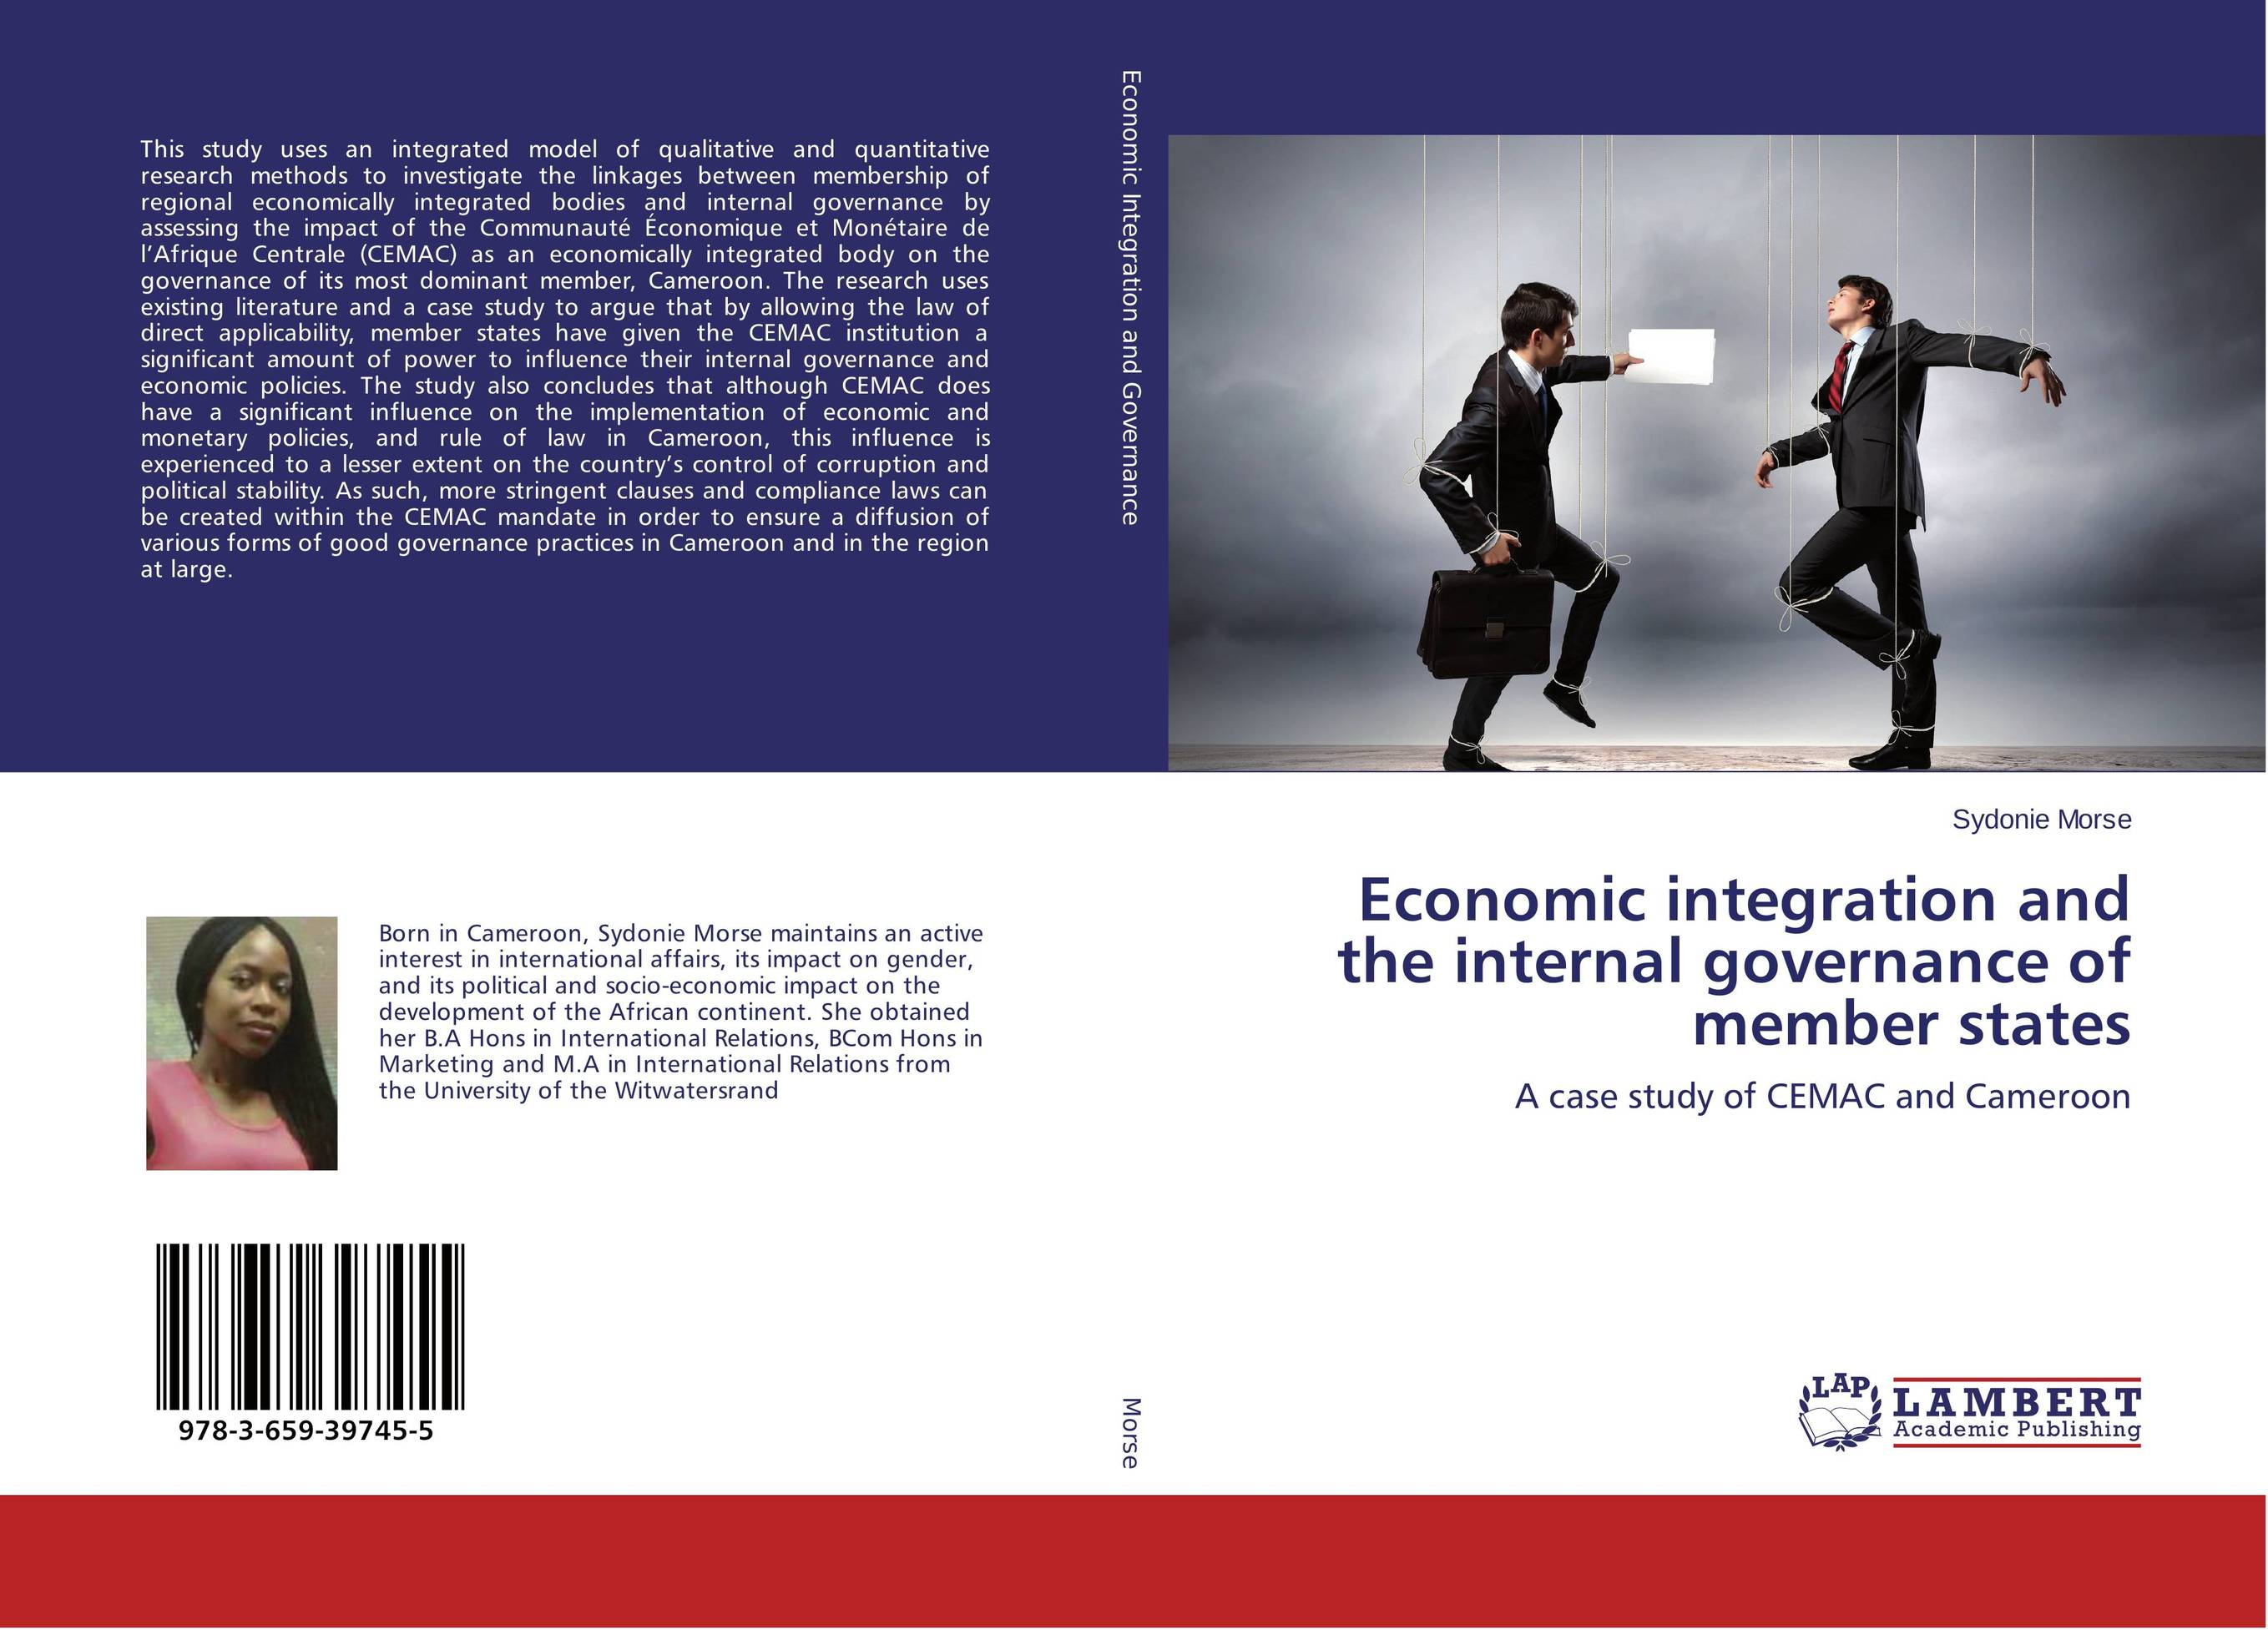 Economic integration and the internal governance of member states a study of the religio political thought of abdurrahman wahid